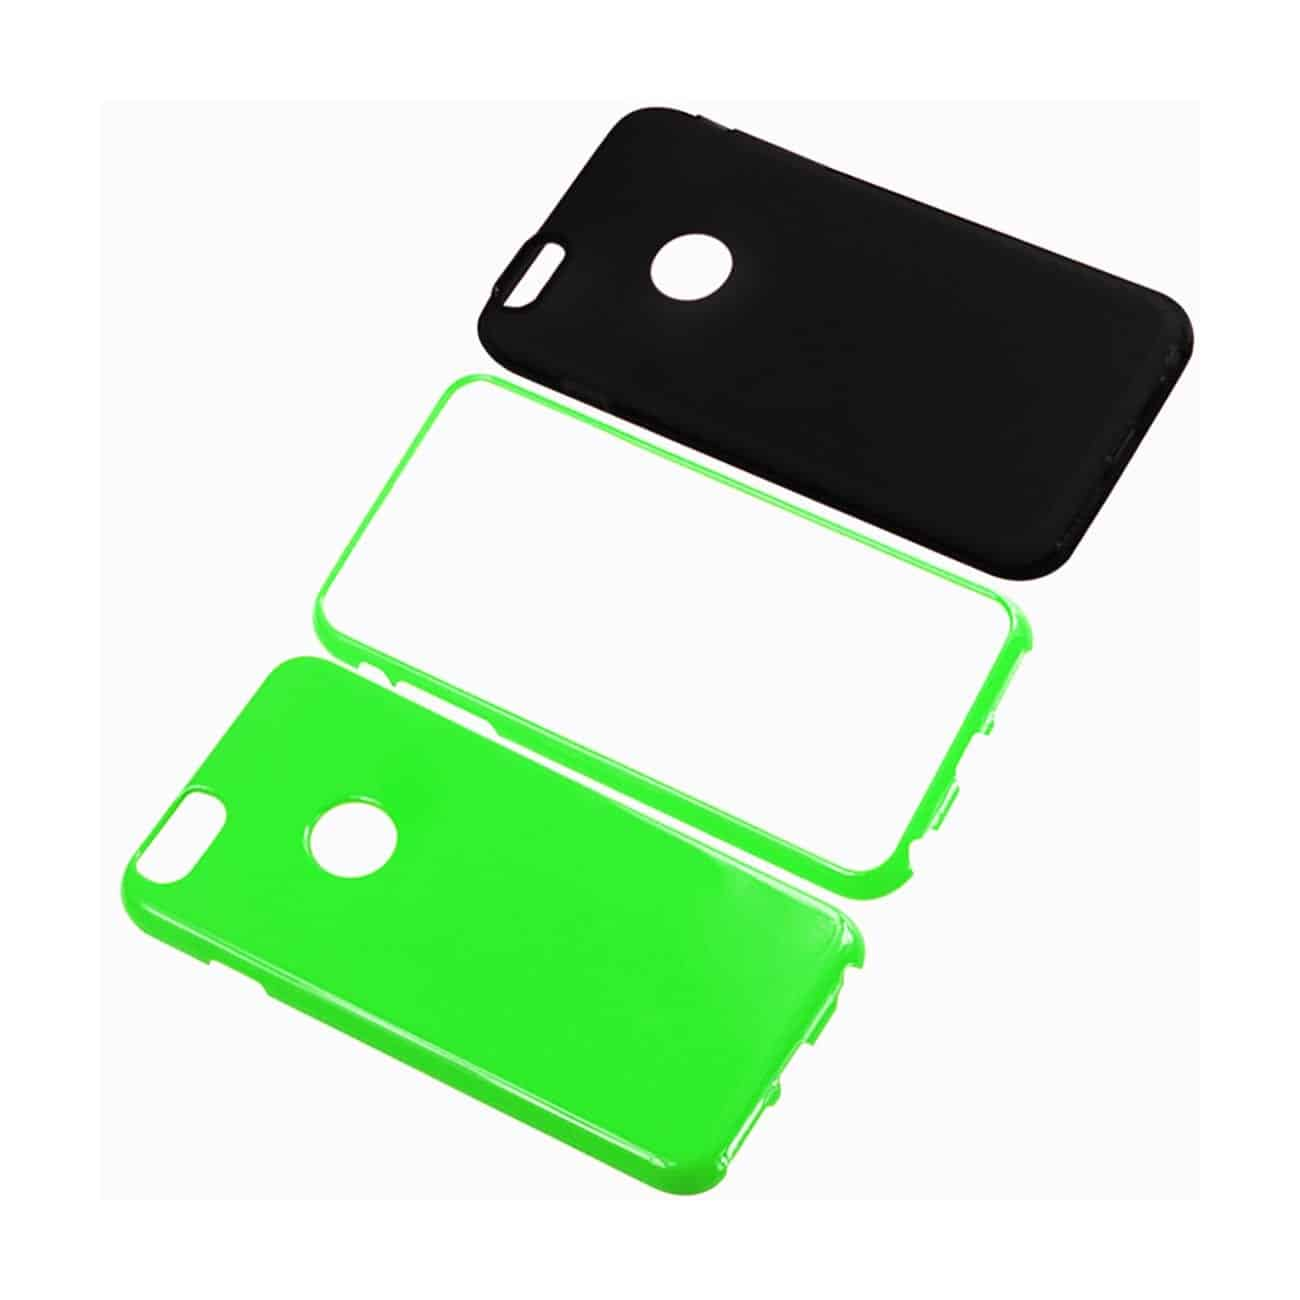 IPHONE 6 SLIM ARMOR CANDY SHIELD CASE IN GREEN